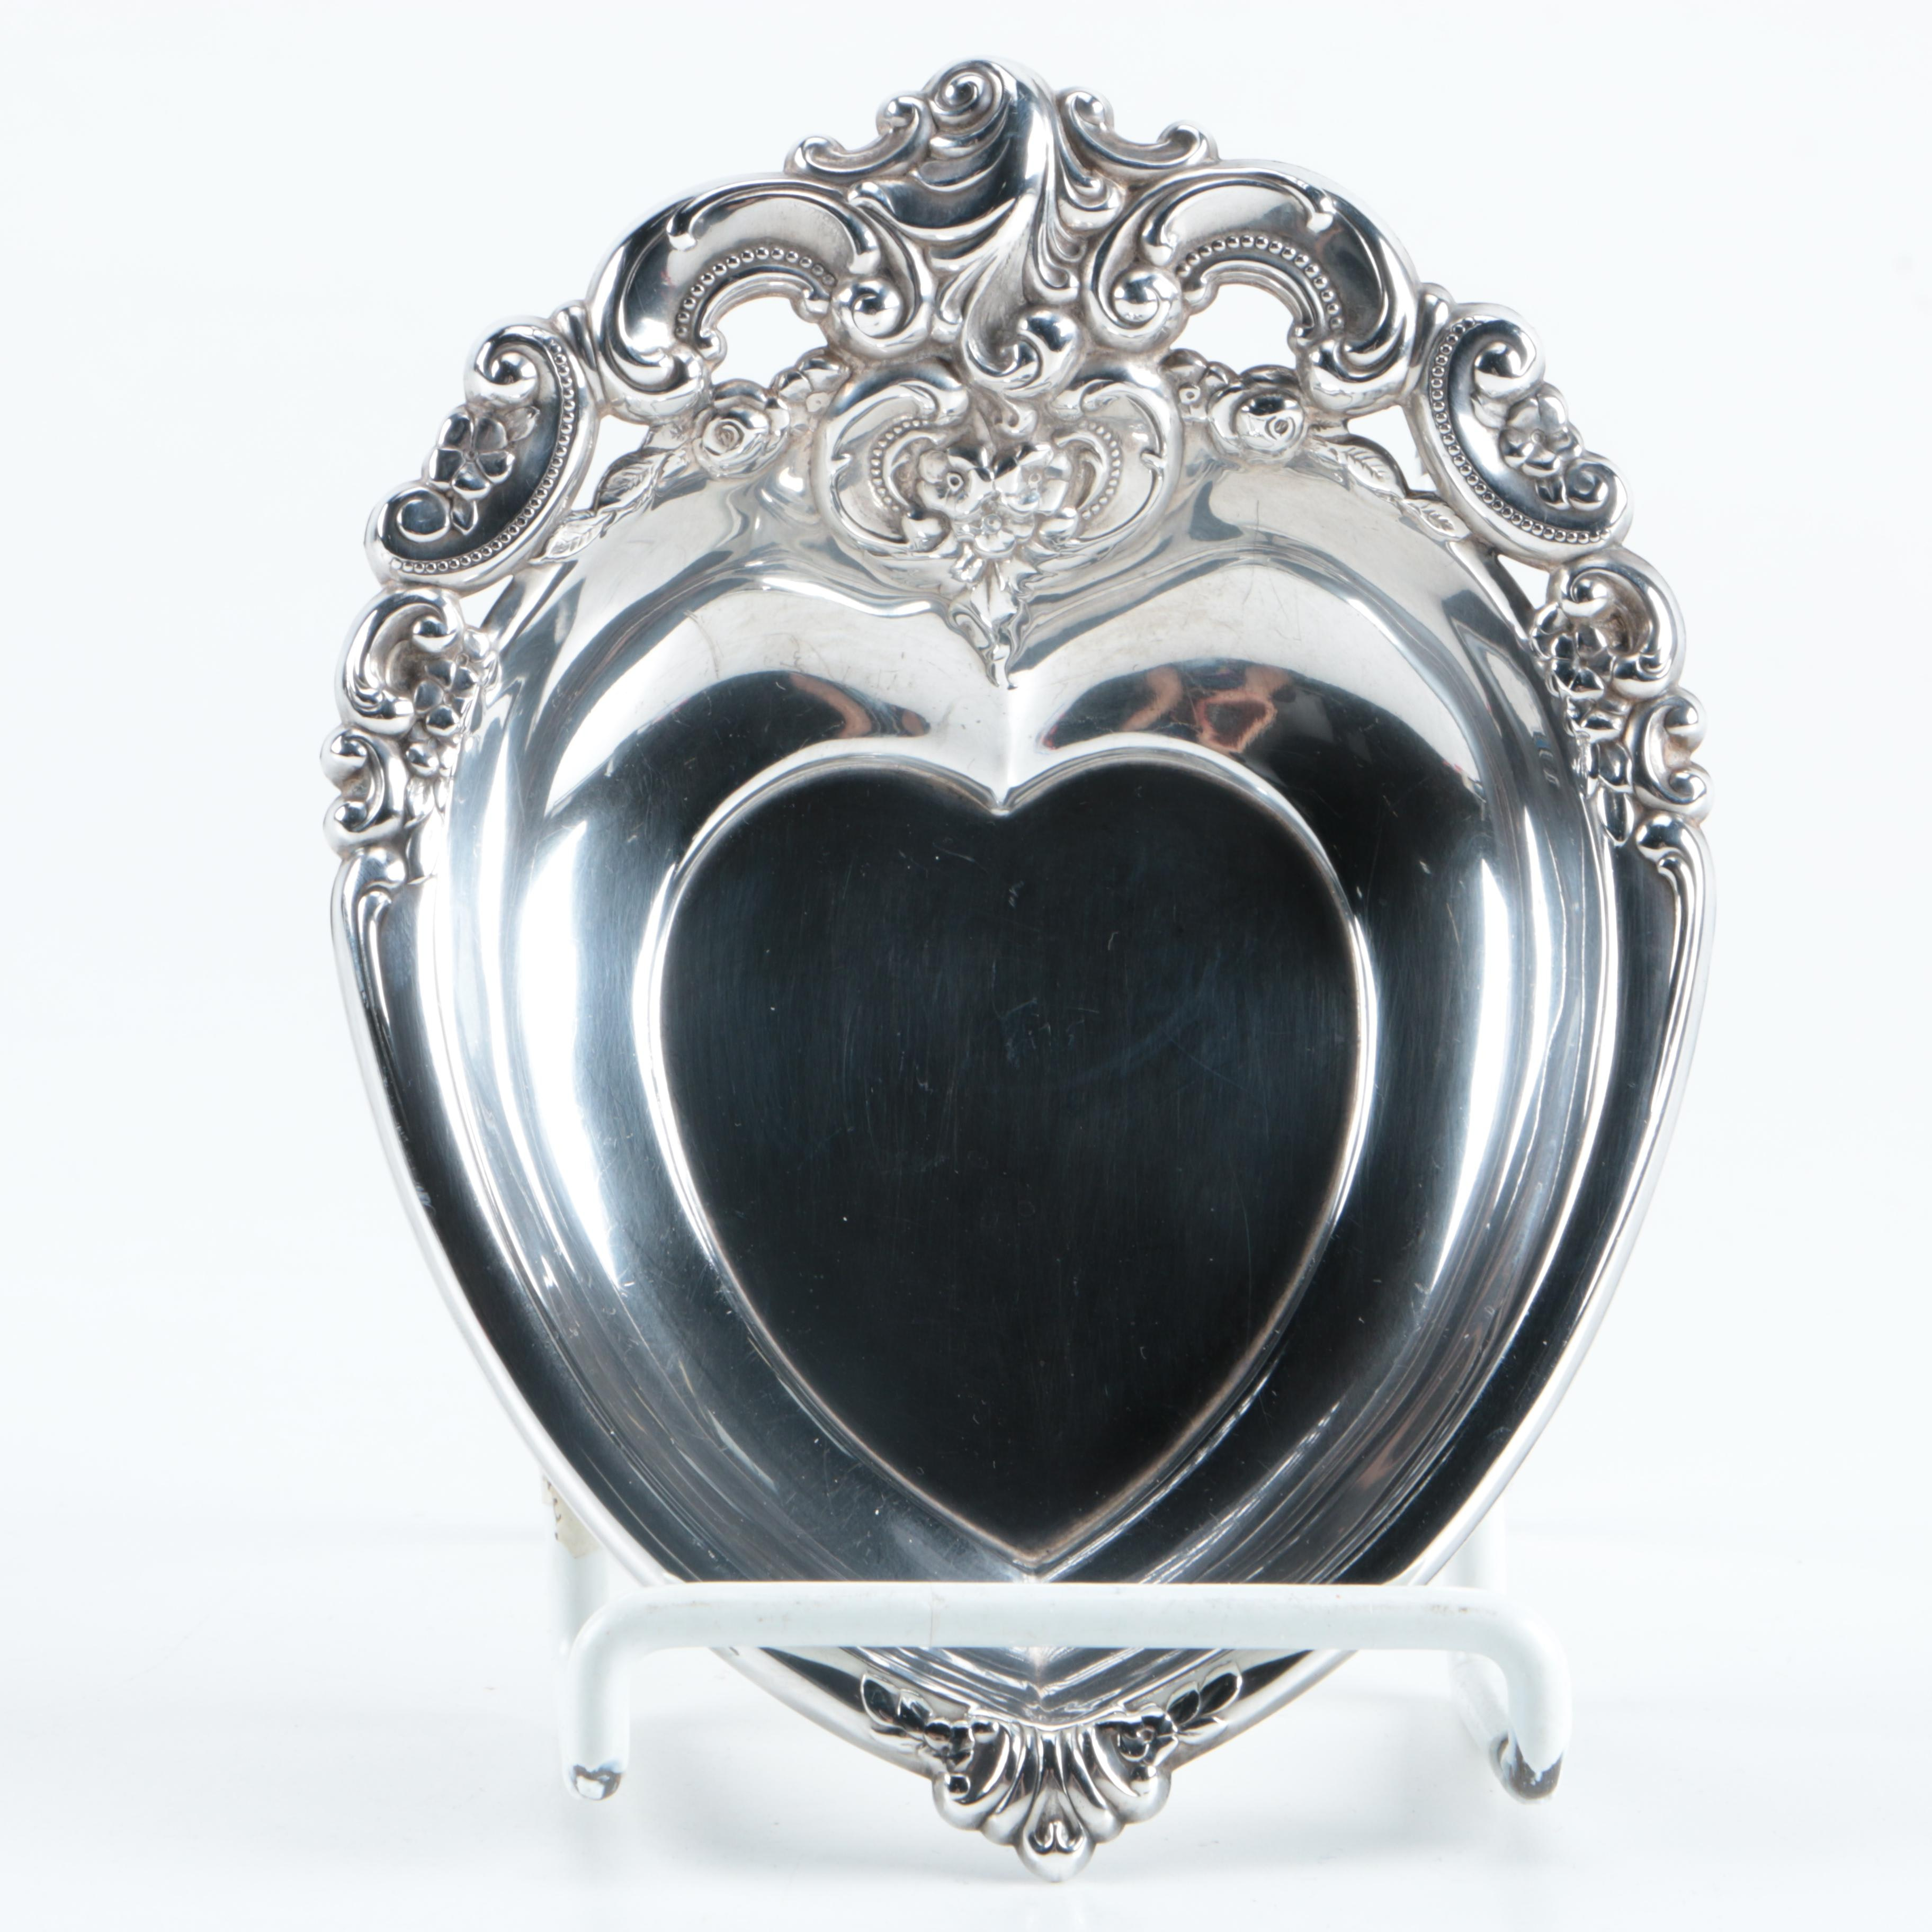 Wallace Sterling Silver Heart Shaped Dish